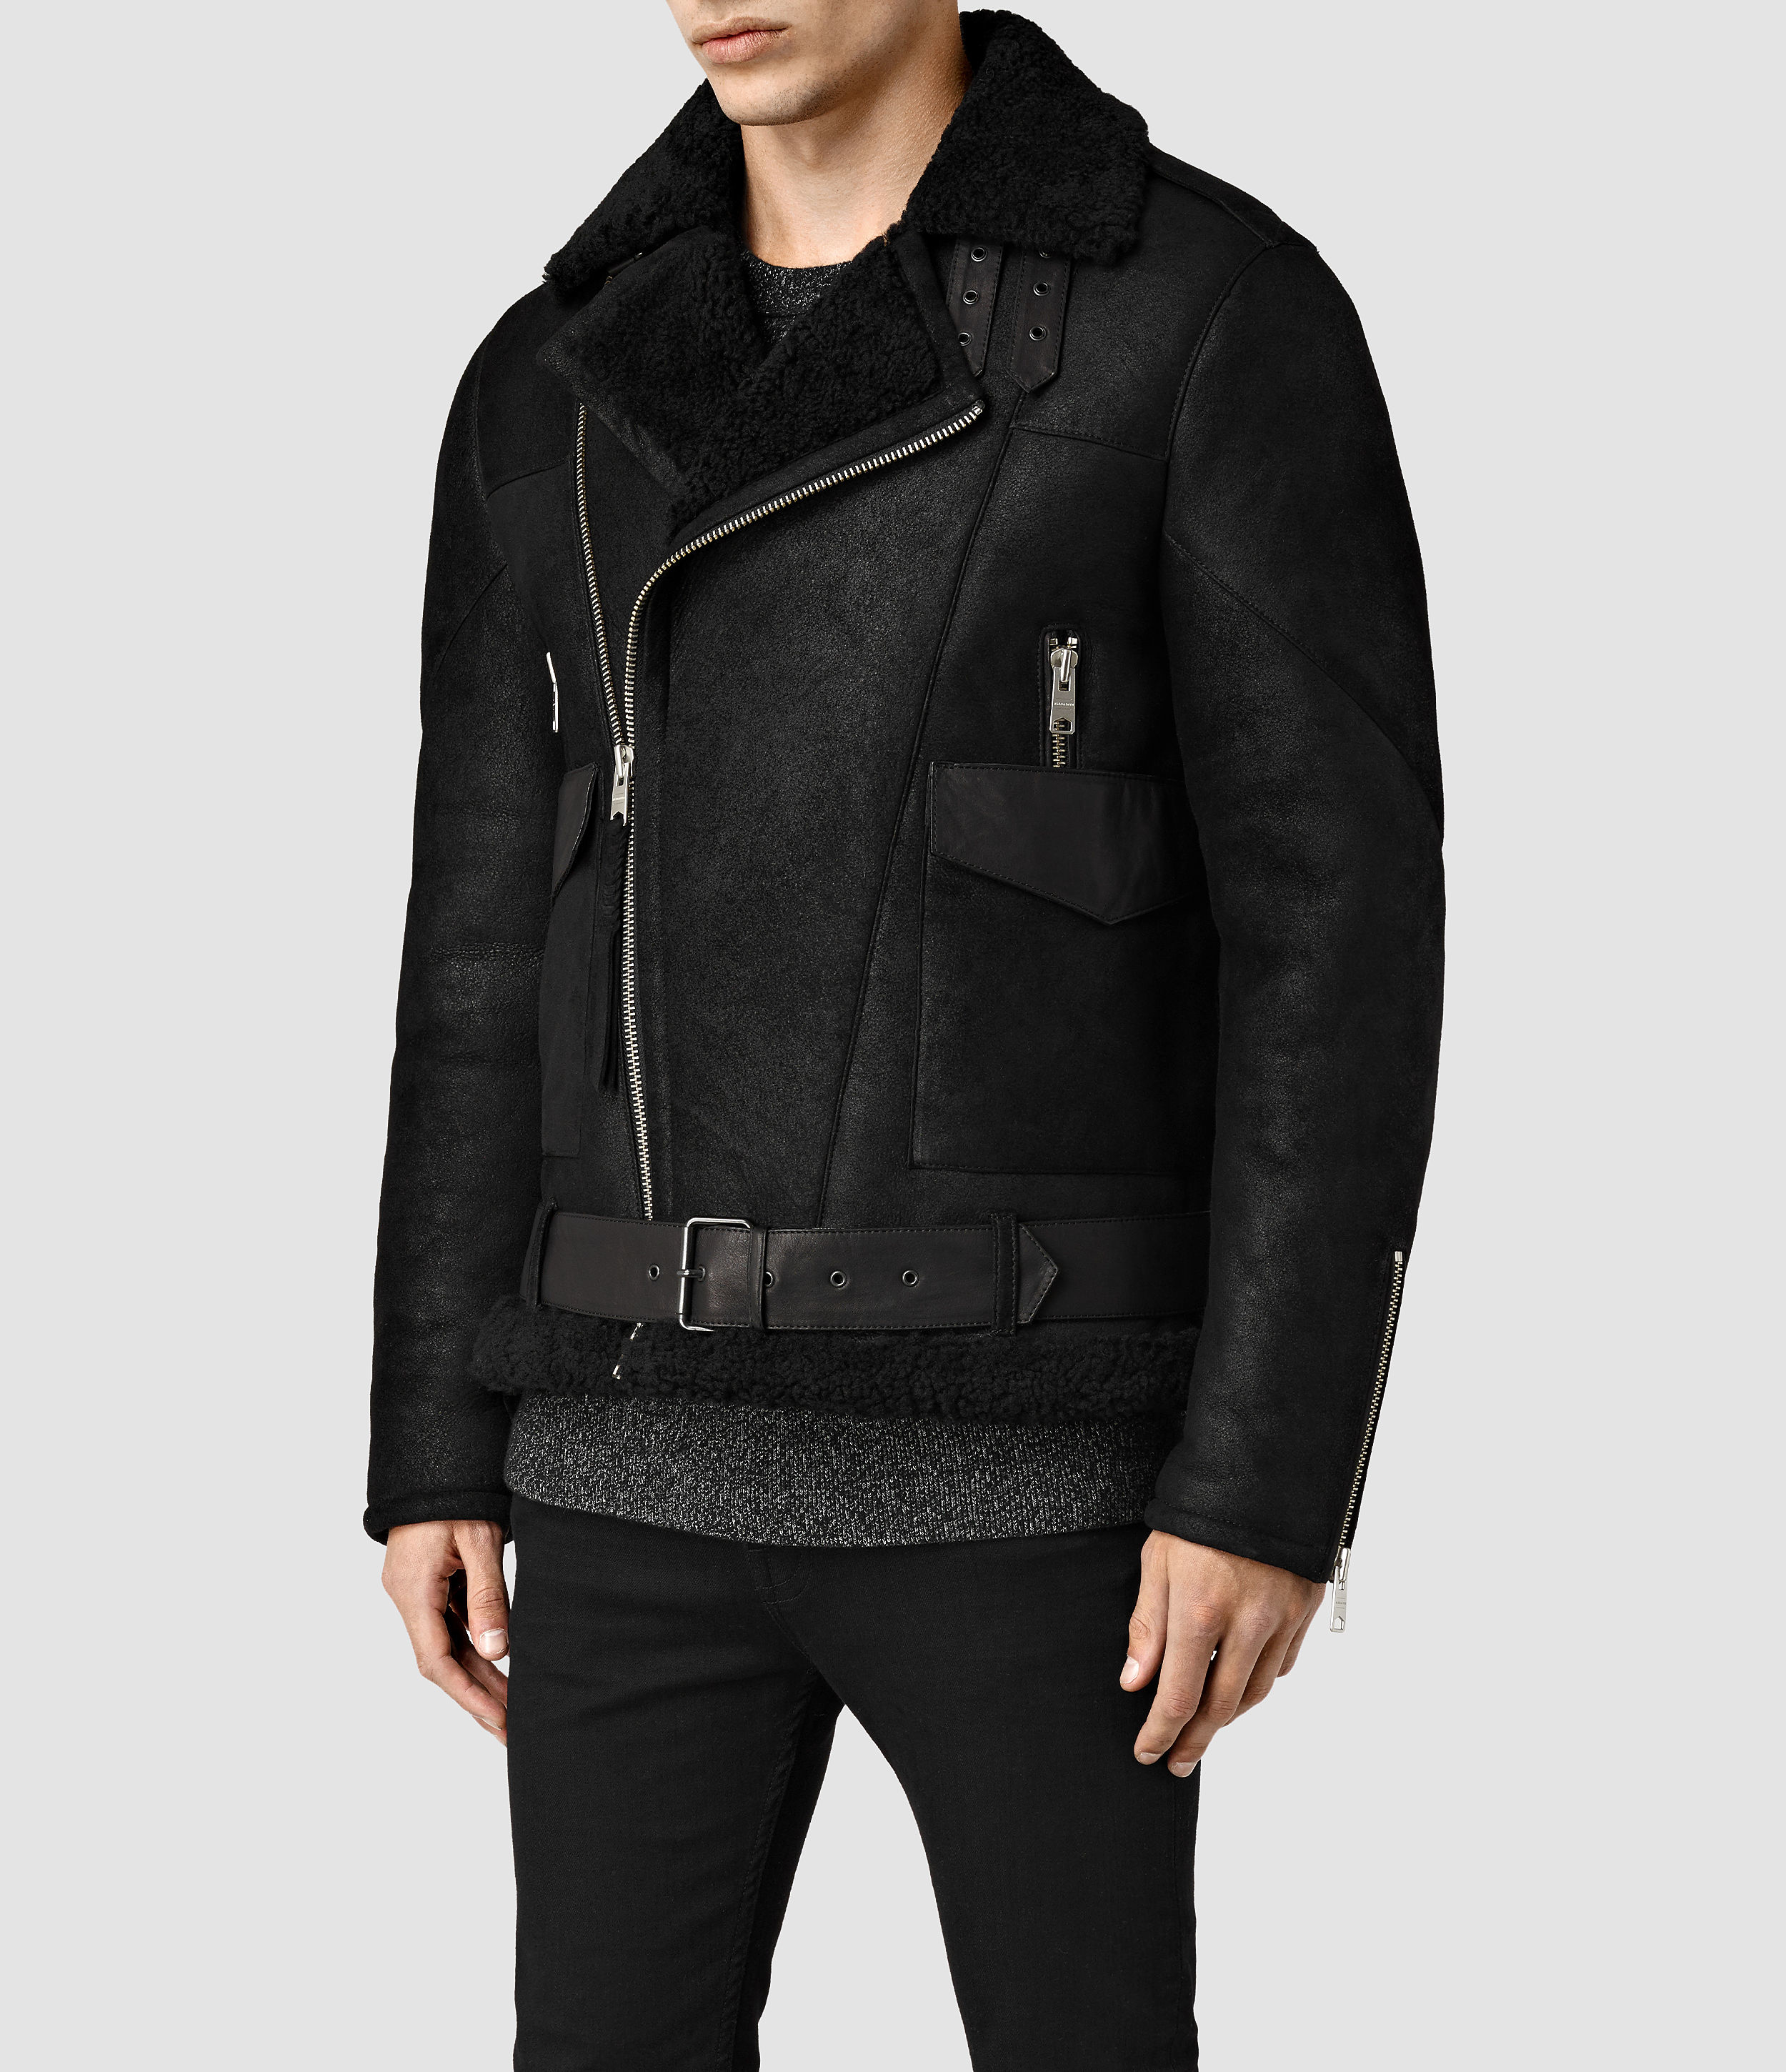 Allsaints Takoma Shearling Jacket in Black for Men | Lyst